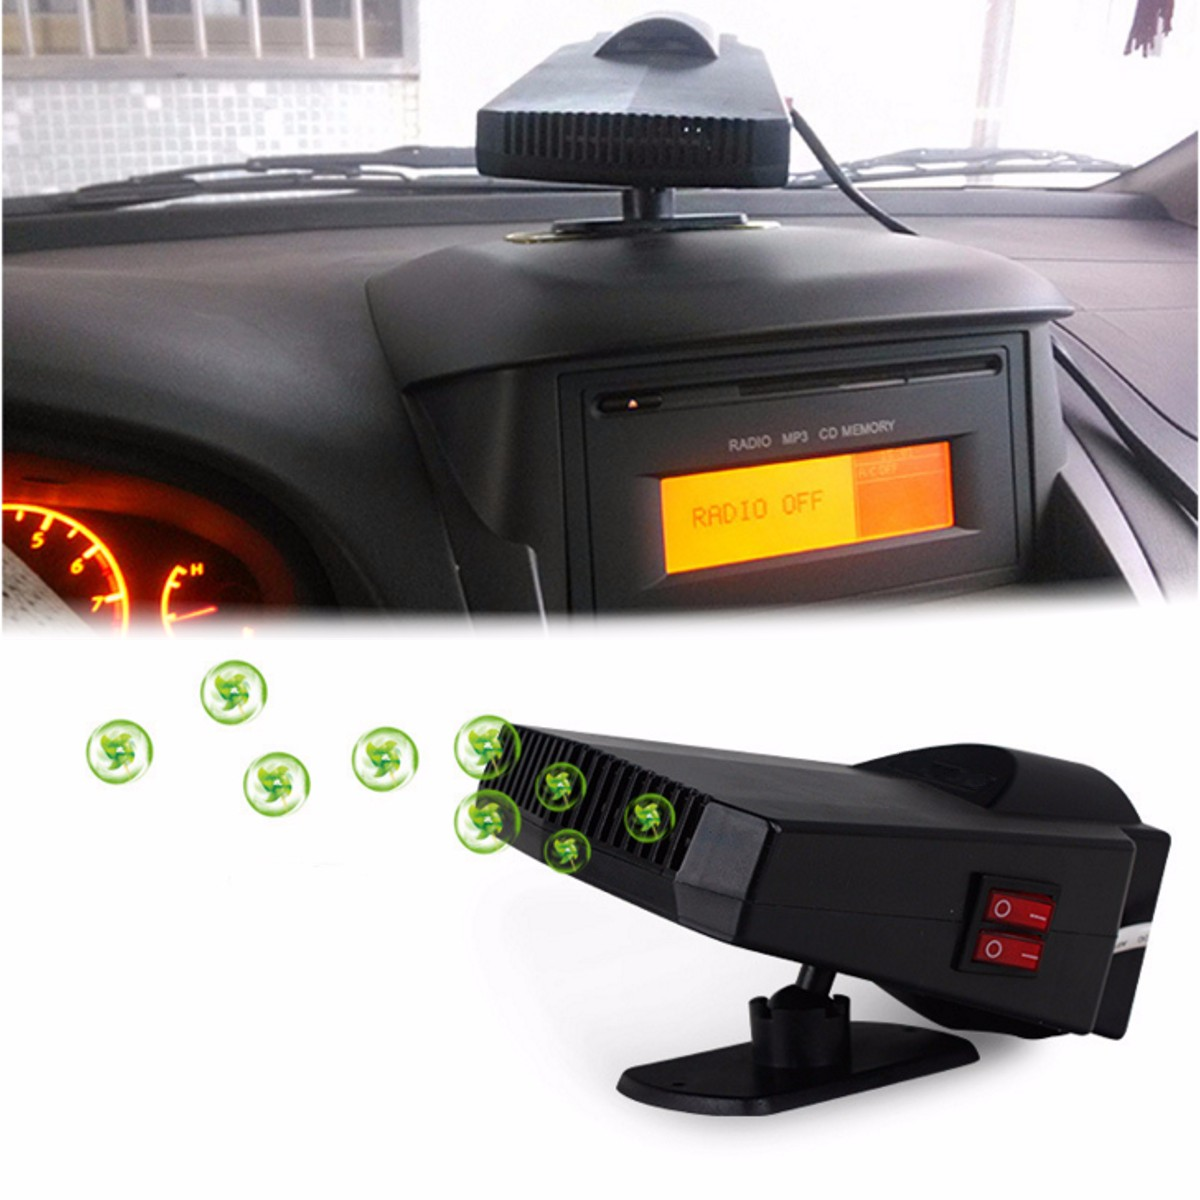 2in1 Car Heater 200W 12V Portable Ceramic Heating Cooling Fan Car Heater Demister Defroster for Car Automobiles Supplies